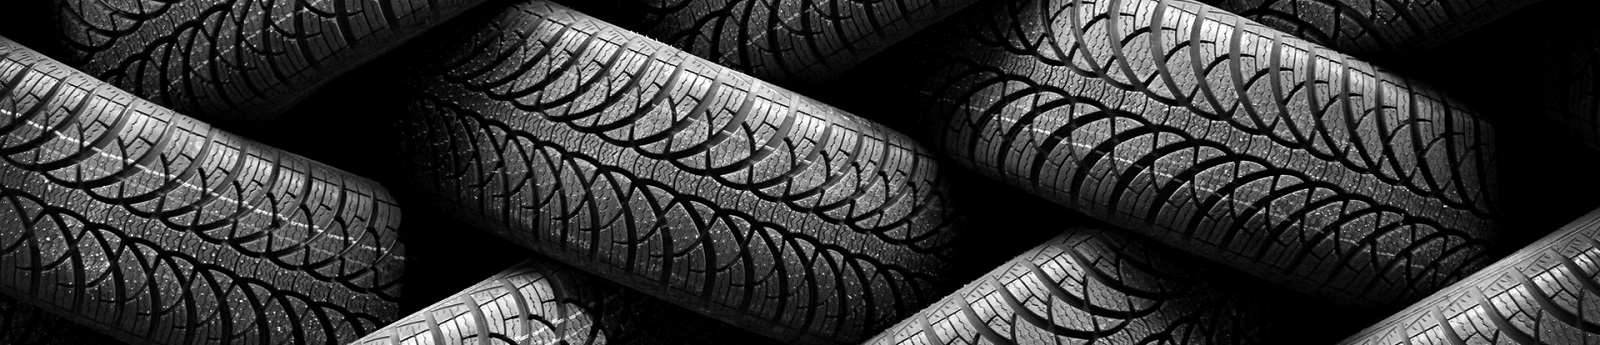 tyres-ryde-isle-of-wight